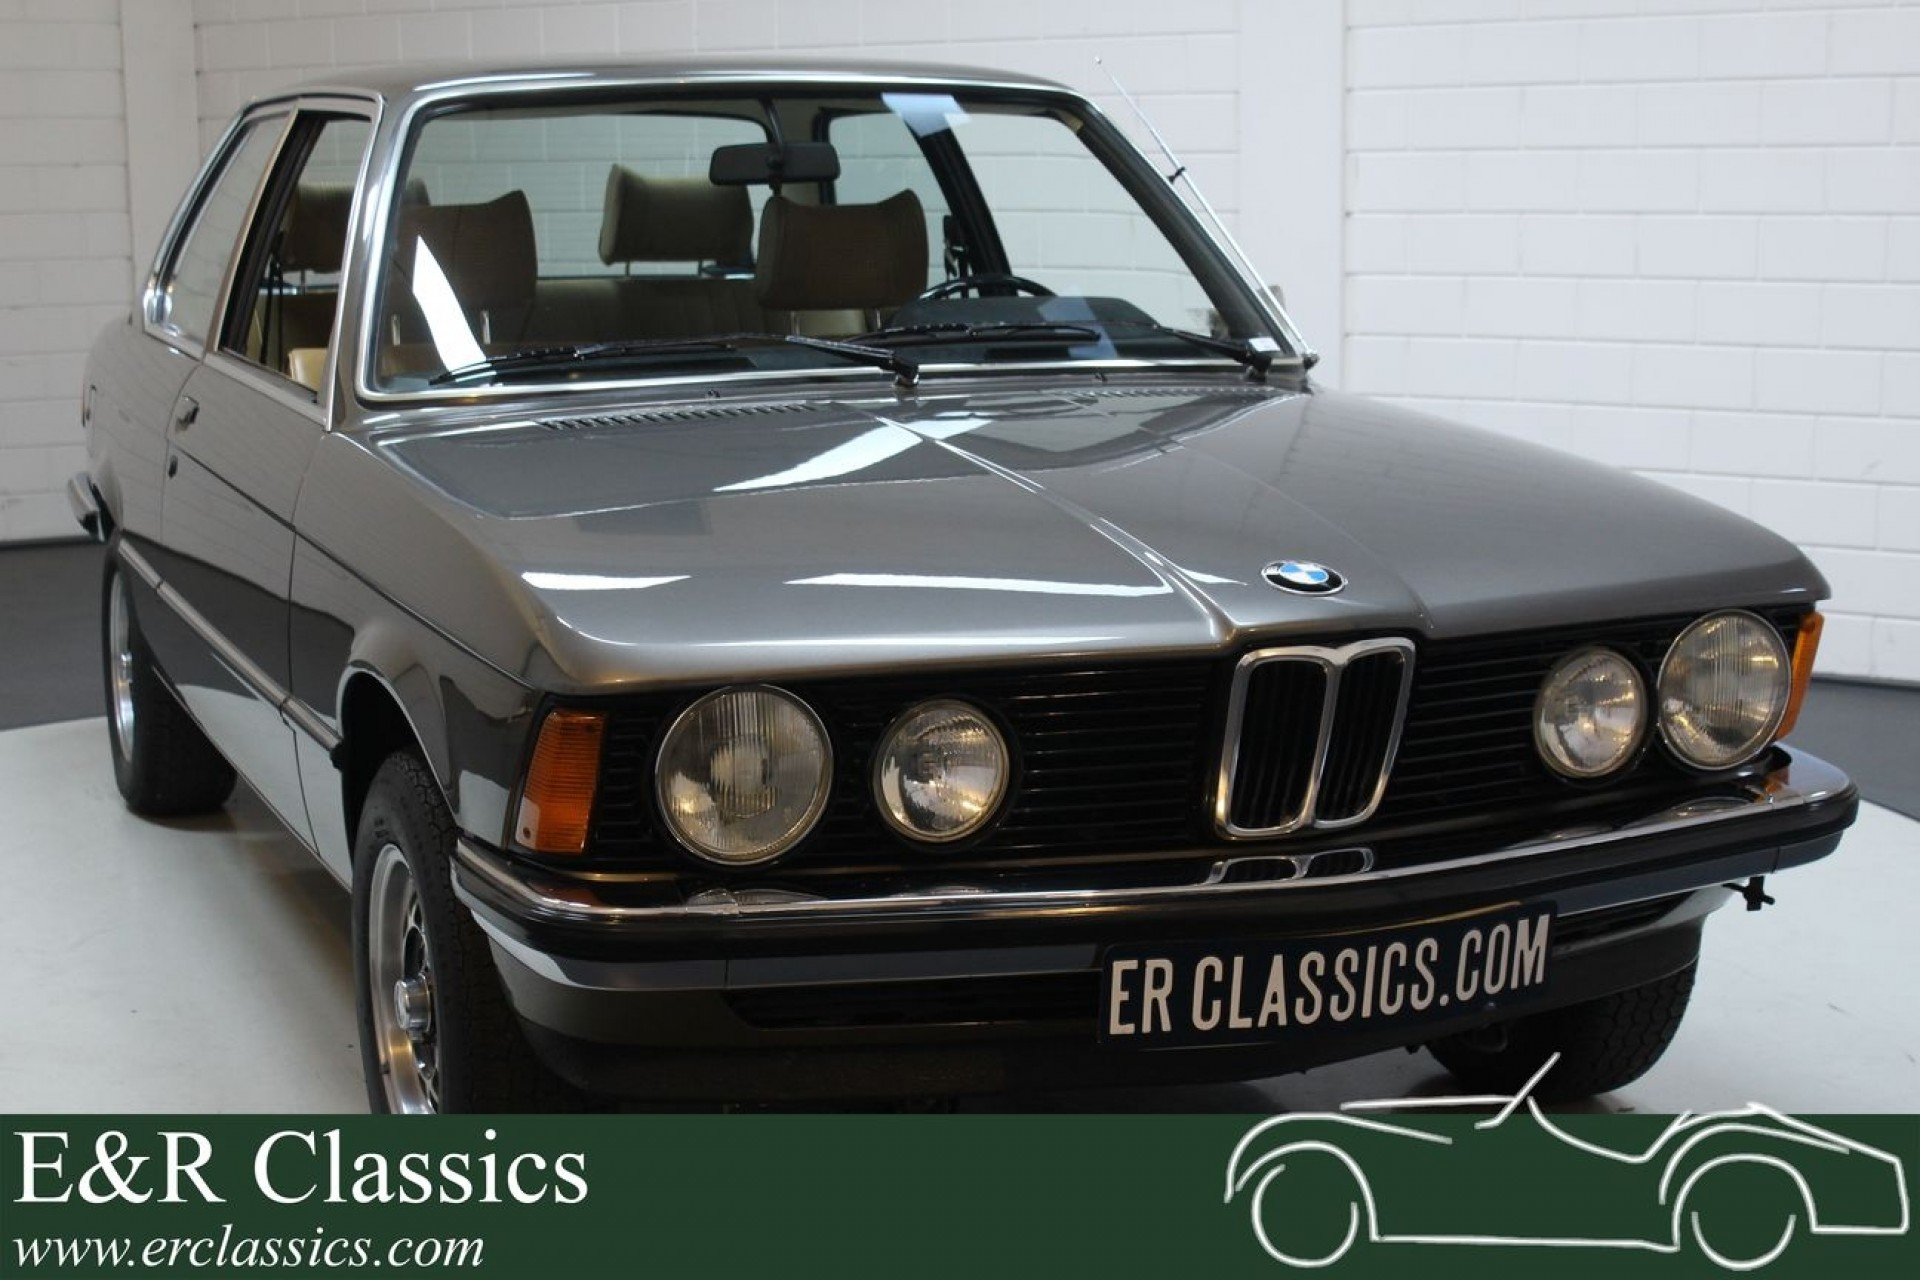 Bmw E21 316 Air Conditioning 1975 For Sale At Erclassics